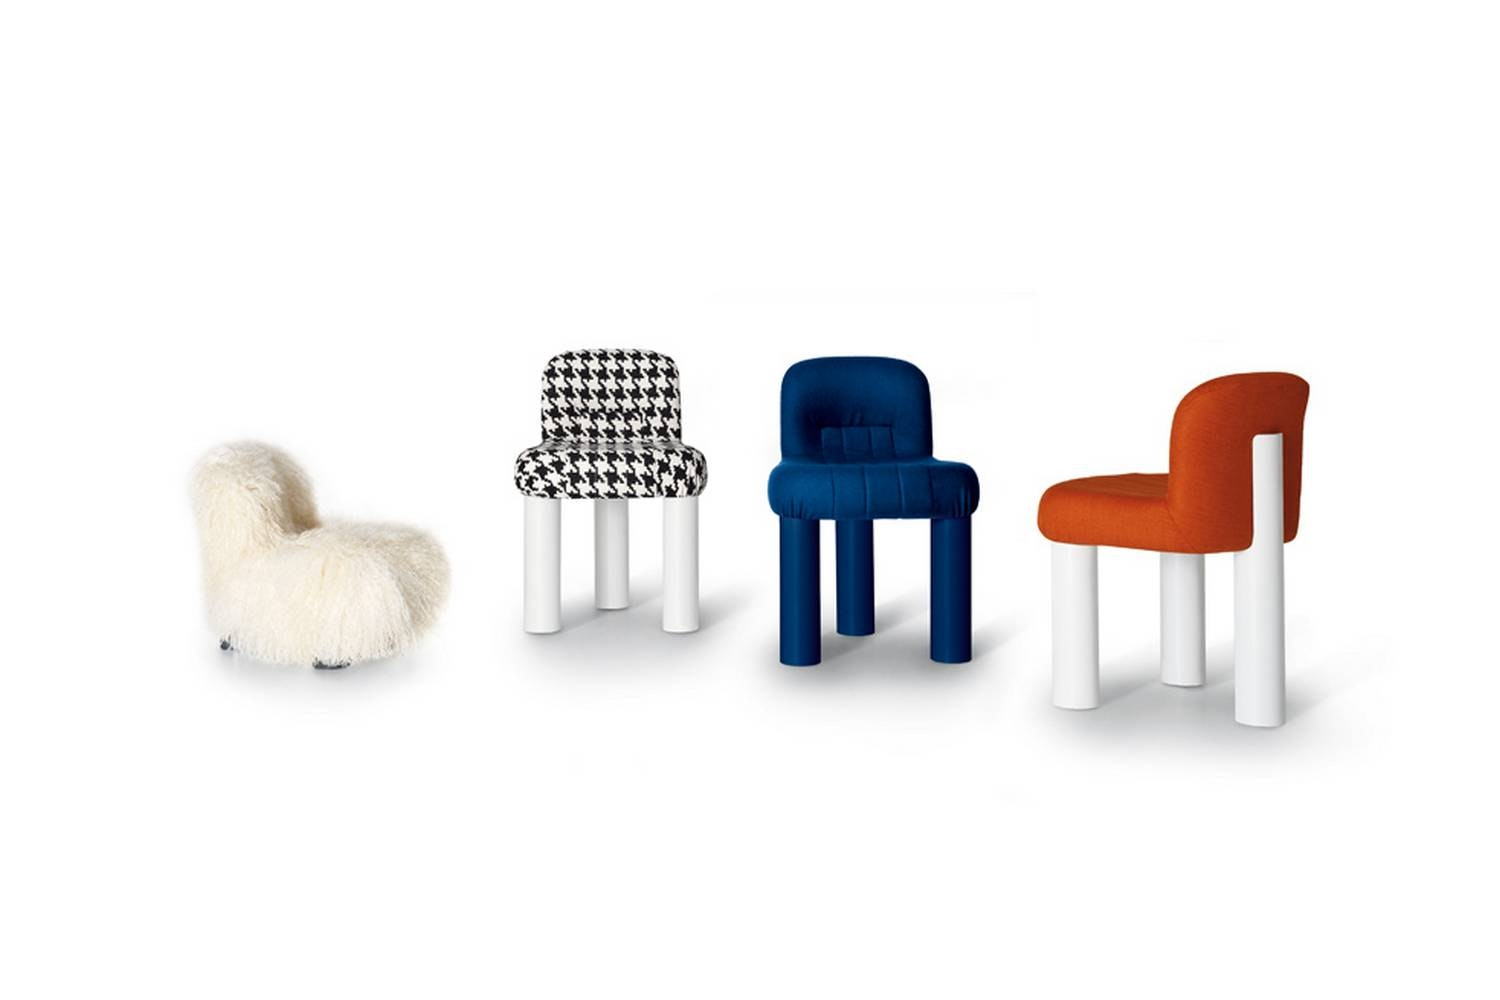 Botolo Armchair by Cini Boeri for Arflex